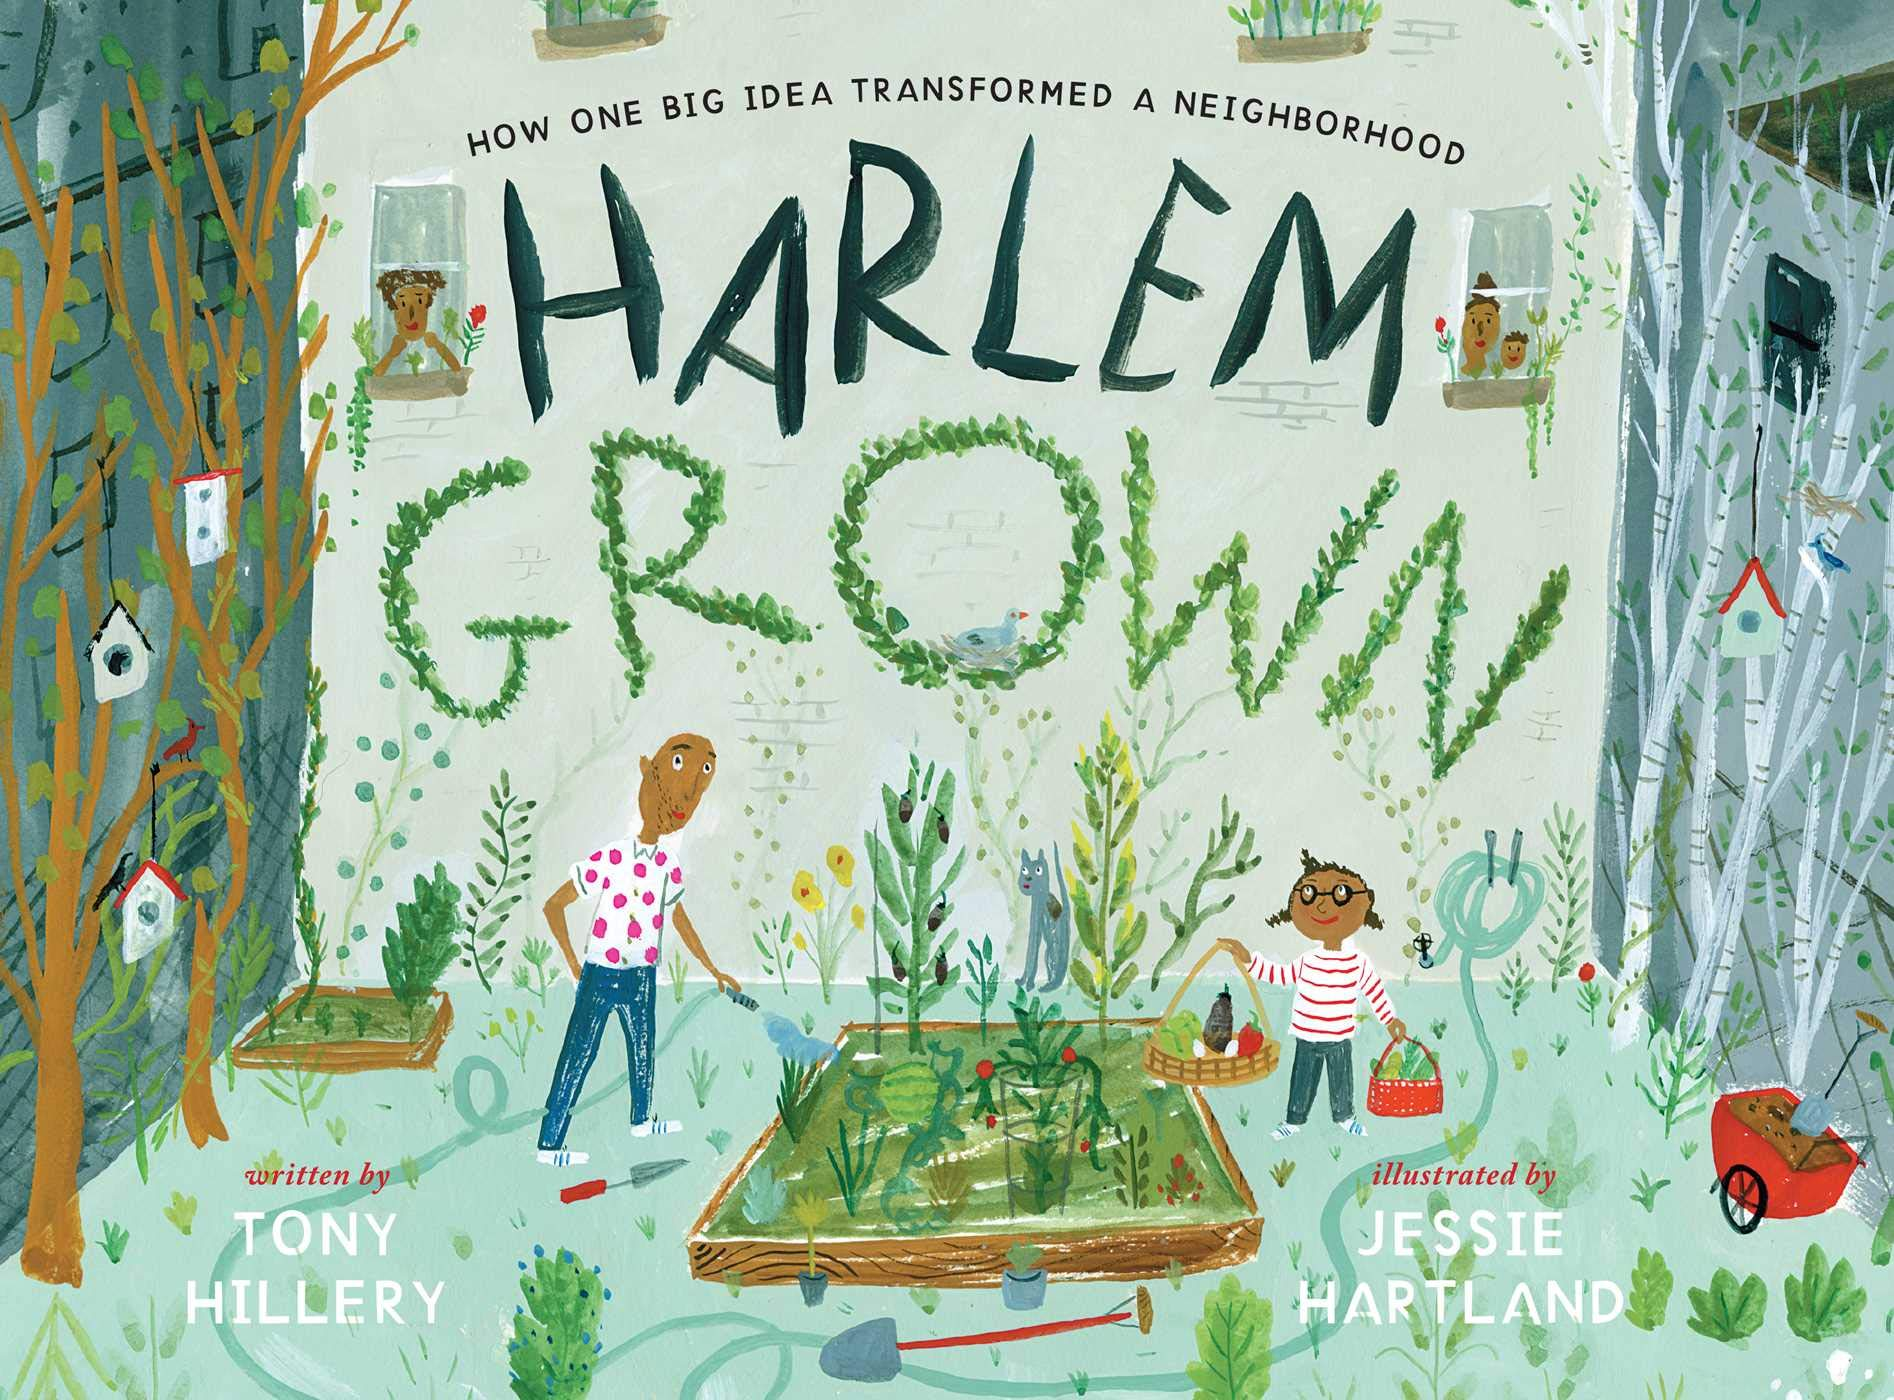 Harlem Grown: How One Big Idea Transformed a Neighborhood: Hillery, Tony,  Hartland, Jessie: 9781534402317: Amazon.com: Books